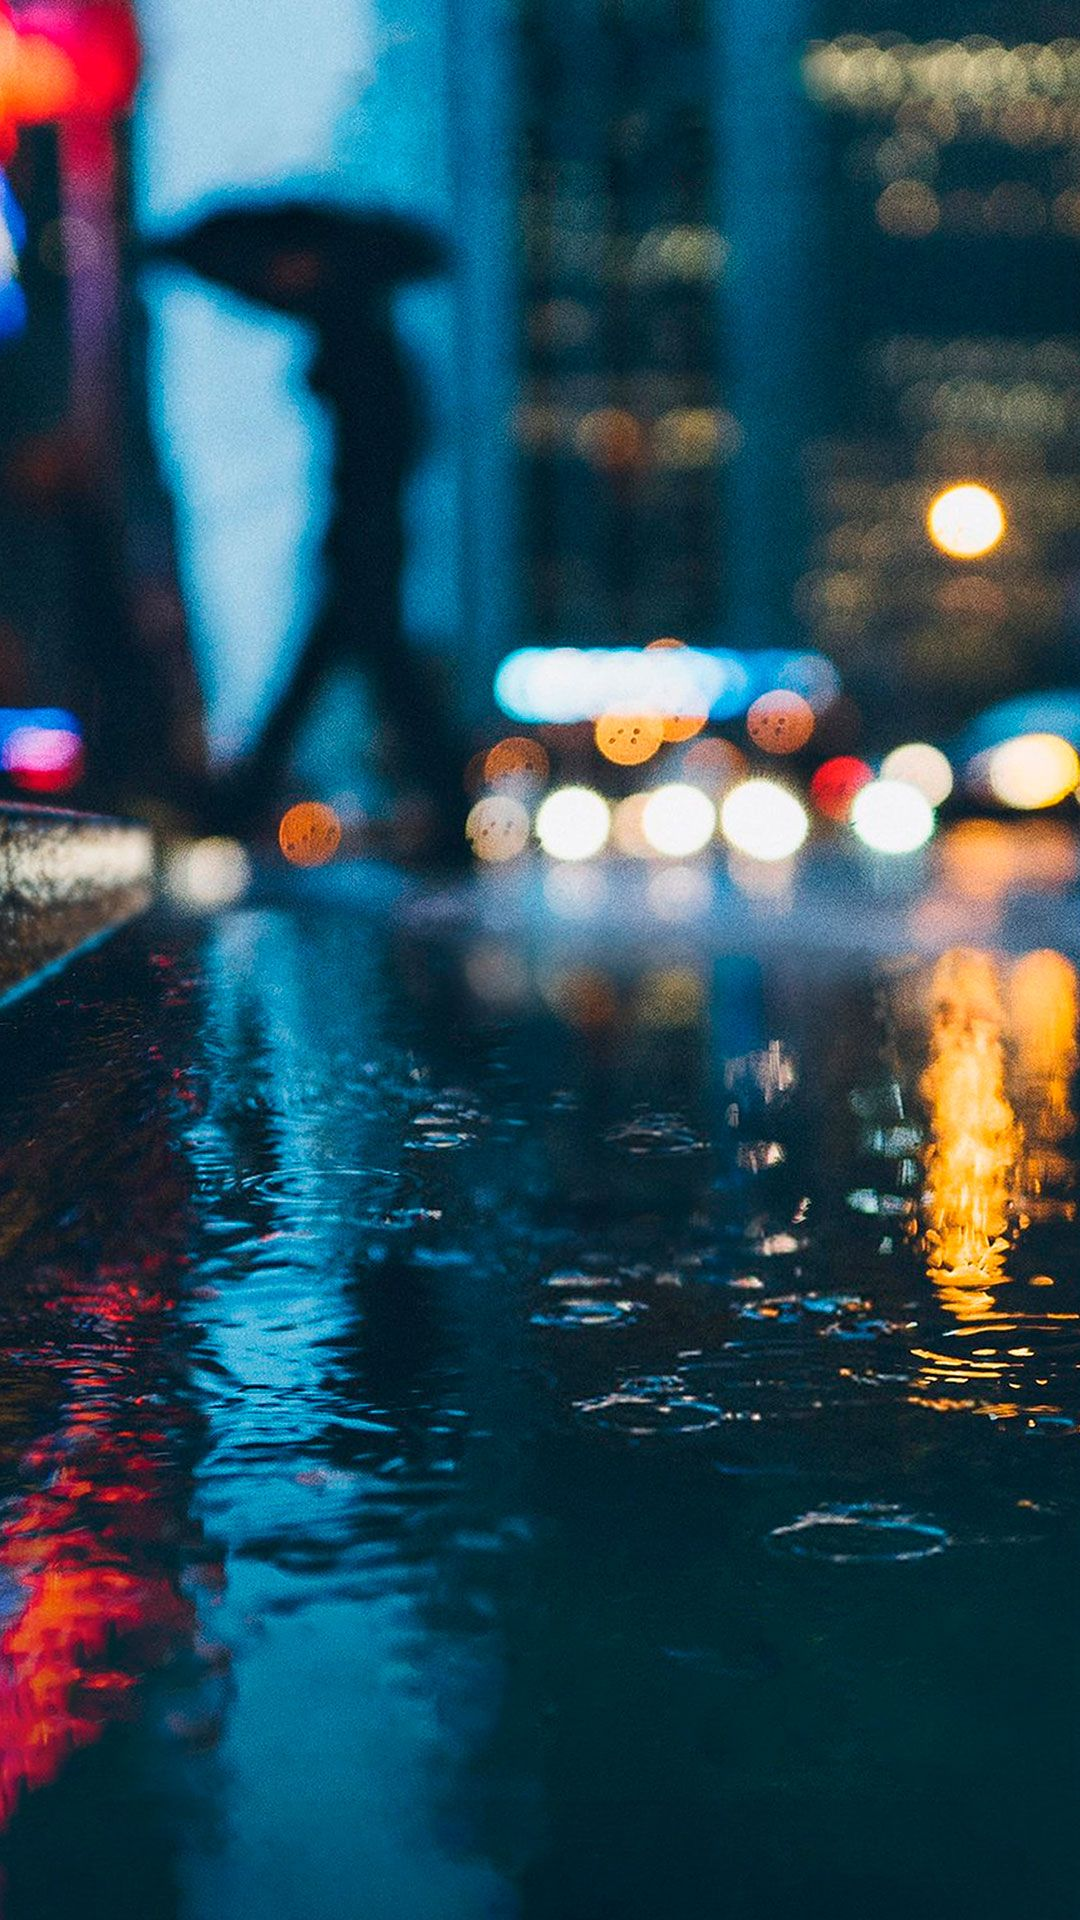 Wallpaper Collection 37 Best Free Hd Rain Wallpaper Iphone Background To Download Pc Mob In Google Pixel Wallpaper Rain Wallpapers Rainy Wallpaper